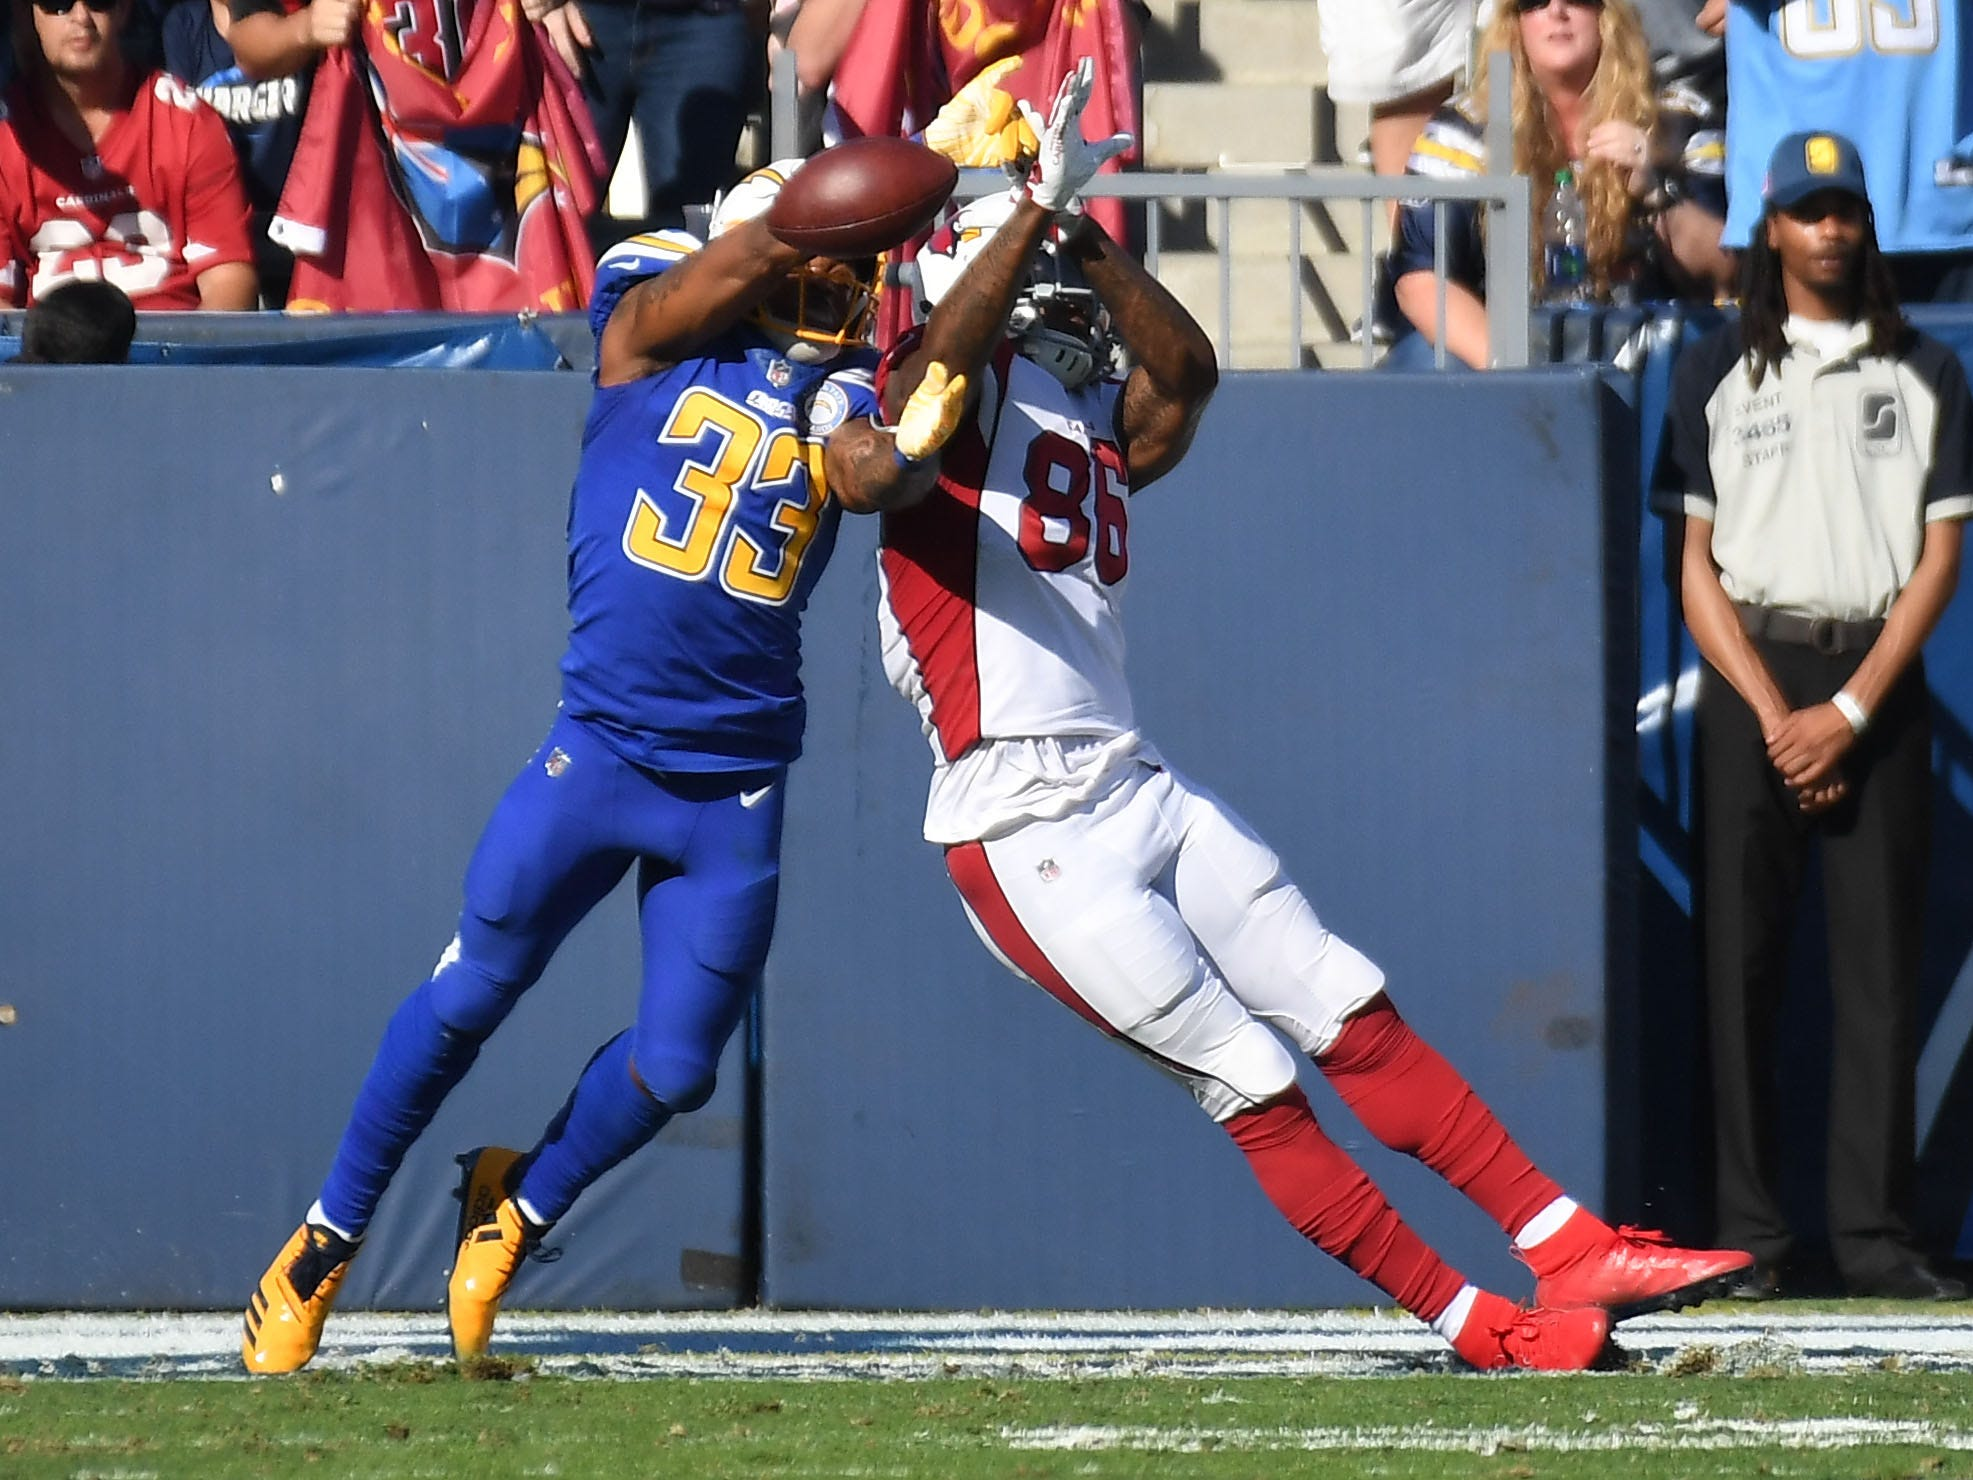 Nov 25, 2018; Carson, CA, USA; Los Angeles Chargers free safety Derwin James (33) breaks up a pass intended for Arizona Cardinals tight end Ricky Seals-Jones (86) in the first half at the StubHub Center. Mandatory Credit: Richard Mackson-USA TODAY Sports